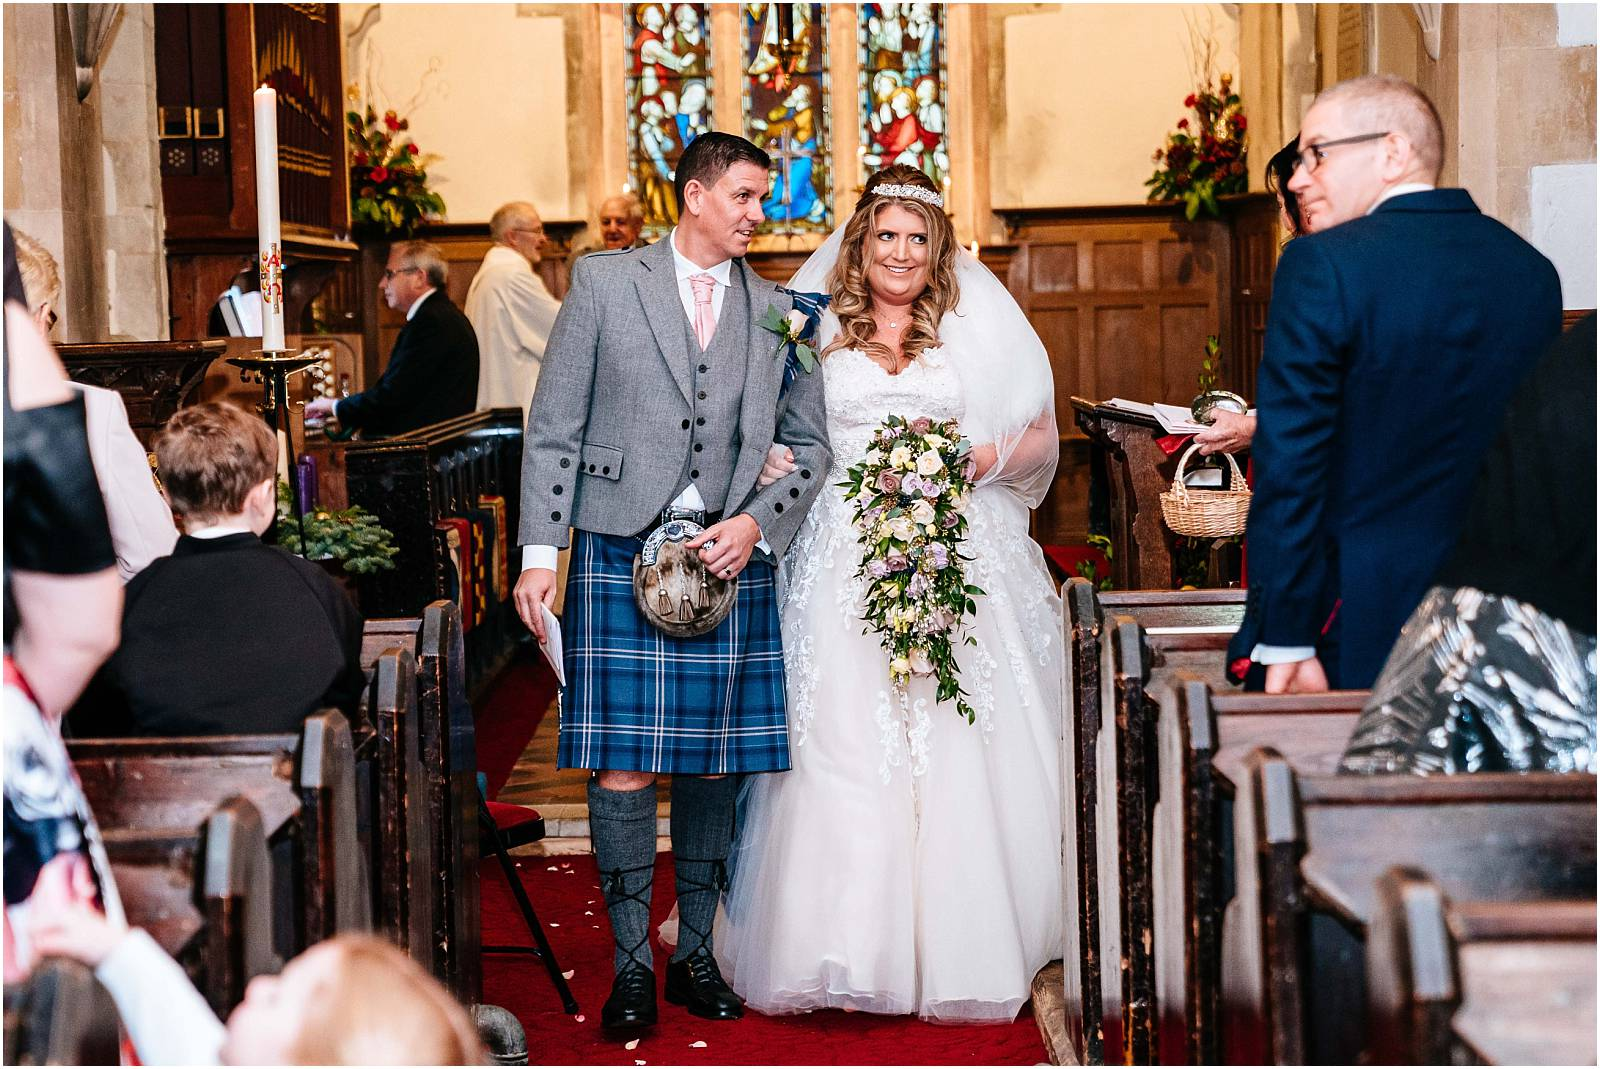 bride and groom walk back down aisle at st andrews church wedding